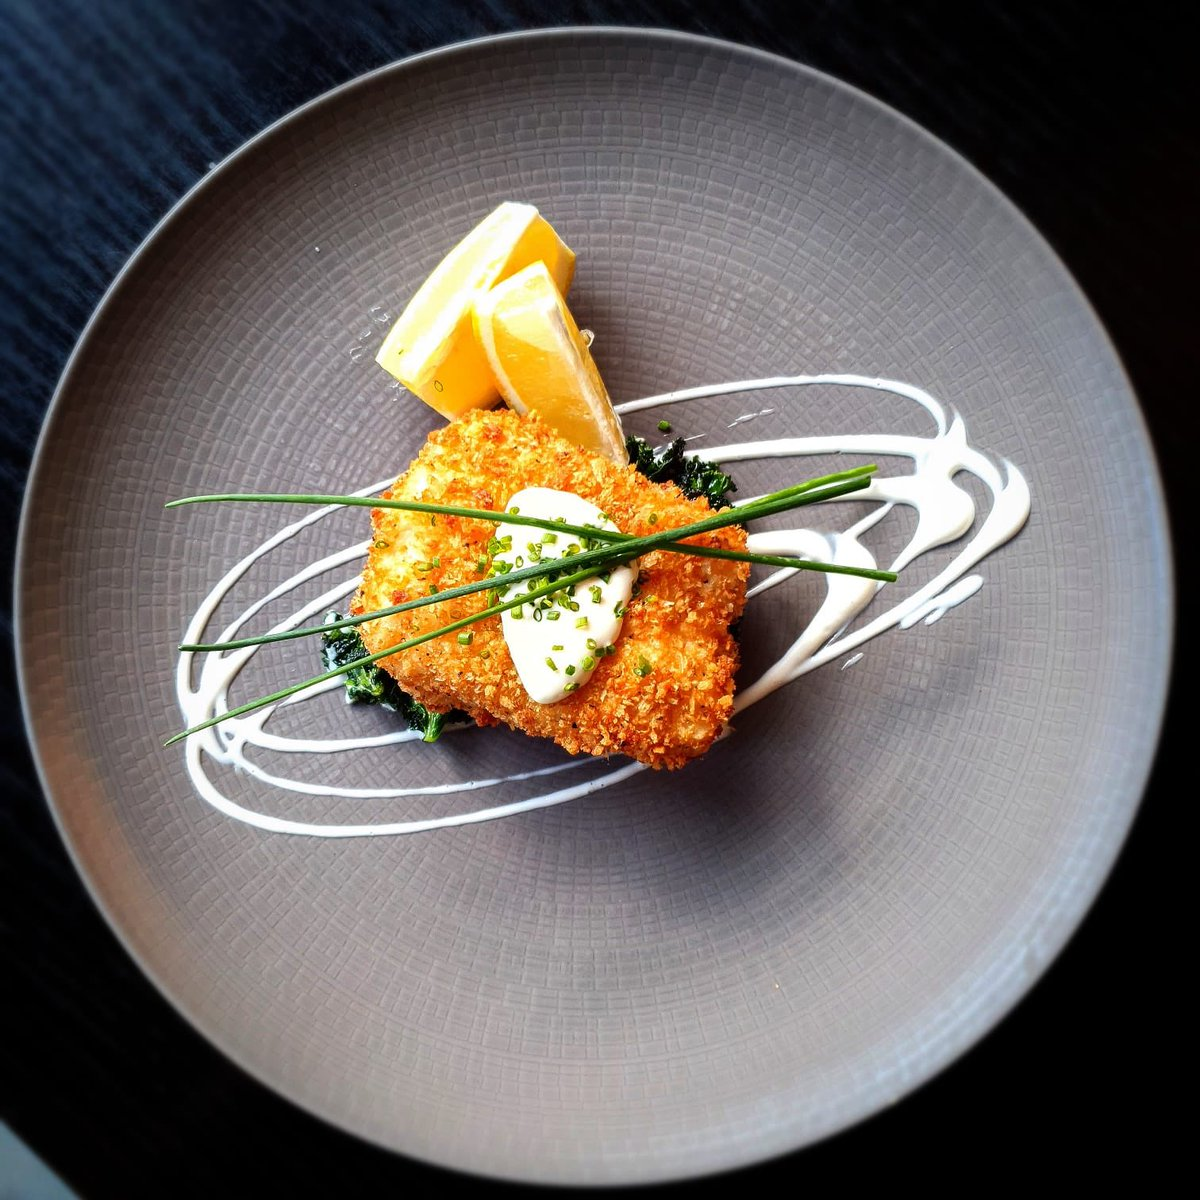 Today's special. Parmesan crusted Cod with wilted kale and garlic chive aioli. Cannot wait to try this. Thanks chef 👩🍳🤩  #dublincitycentre #dublinonourdoorstep #Ourteam #chefgoals #chefteam #dublinfood #dublindining https://t.co/2PPOZaEwVG